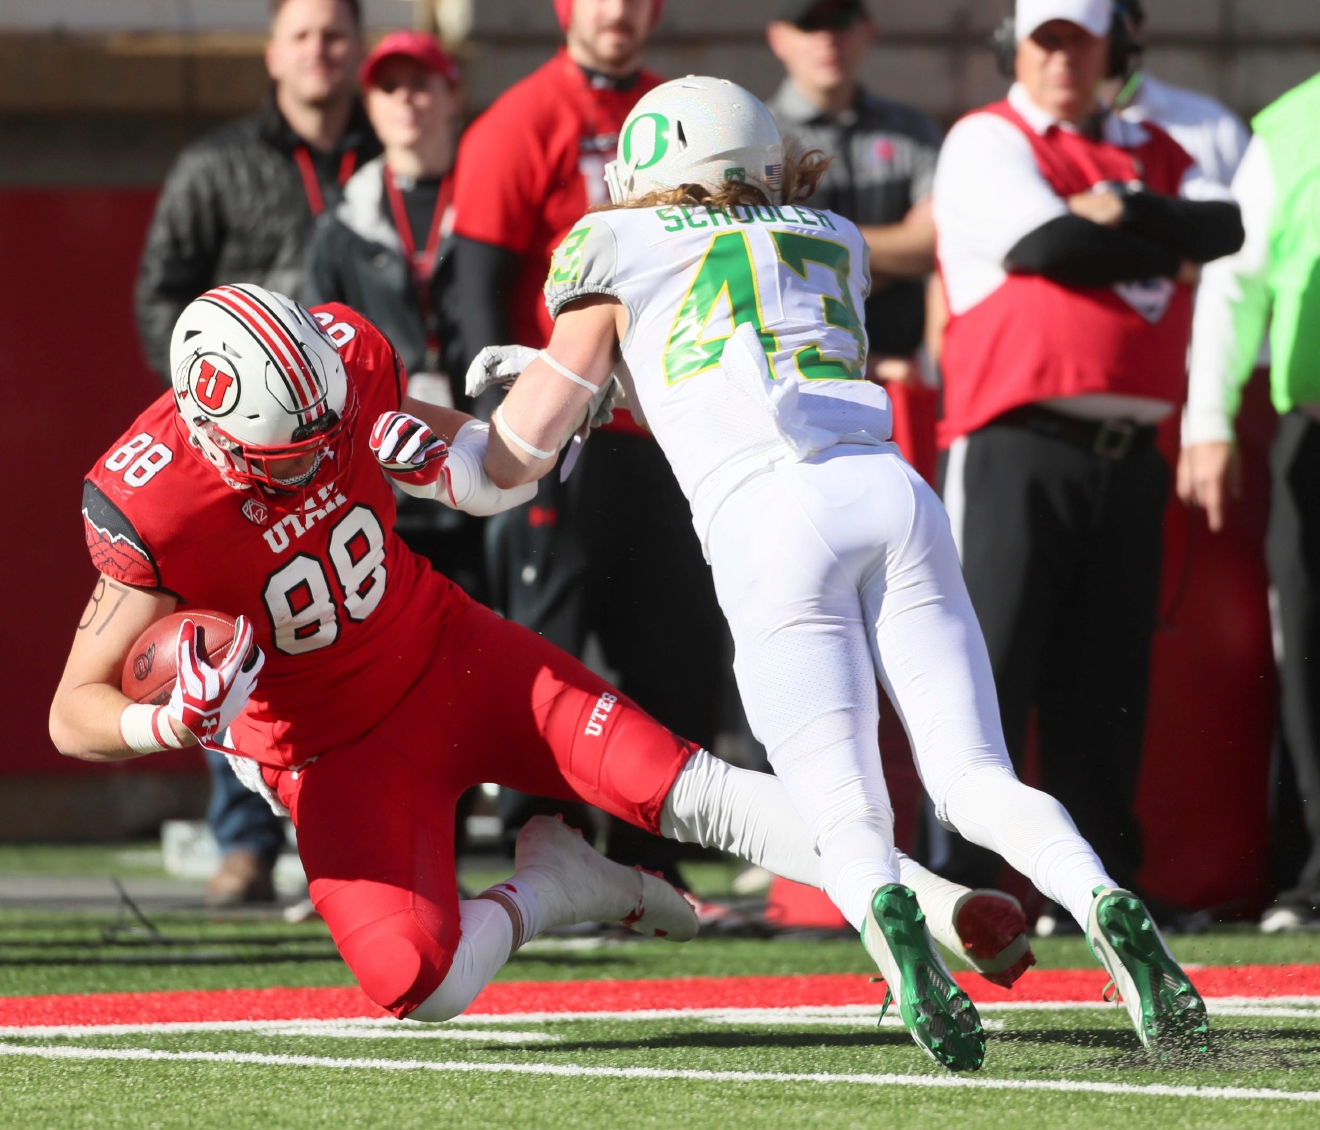 Utah tight end Harrison Handley (88) is hit and tackled by Oregon safety Brenden Schooler (43) in the first half during an NCAA college football game, Saturday, Nov. 19, 2016, in Salt Lake City. (AP Photo/George Frey)